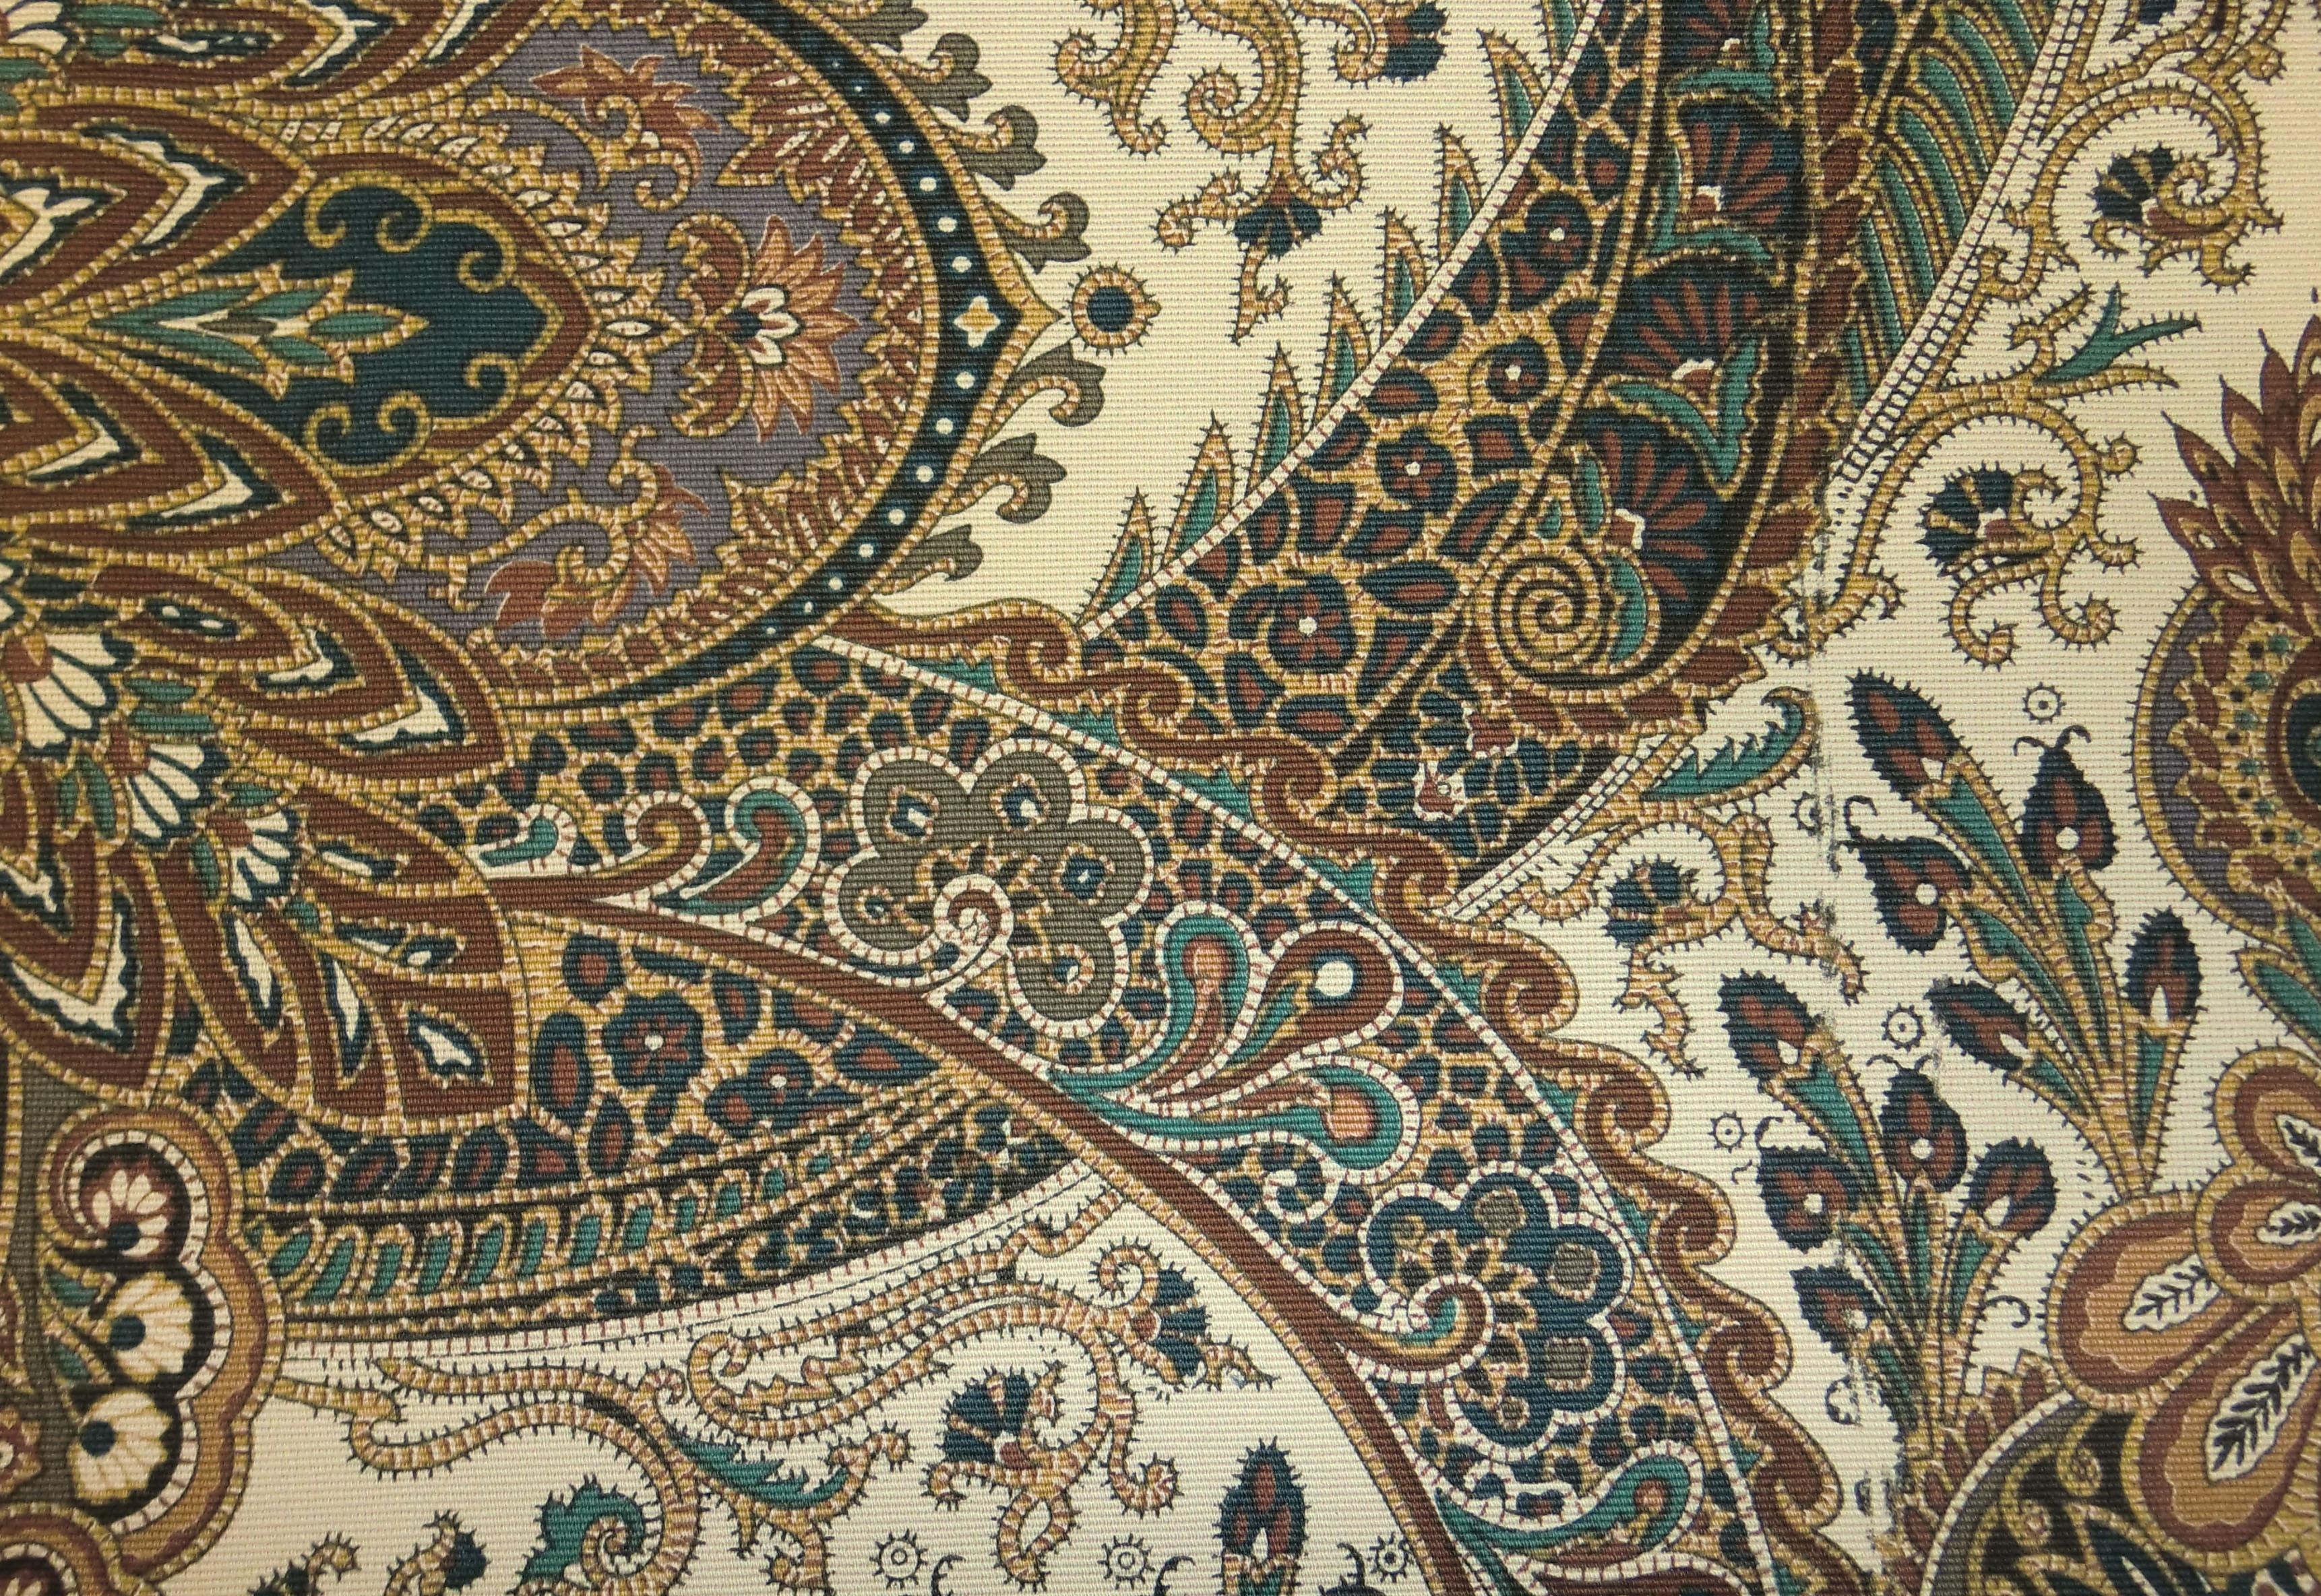 Free download Ralph Lauren Marmande Paisley Truffle Search Results